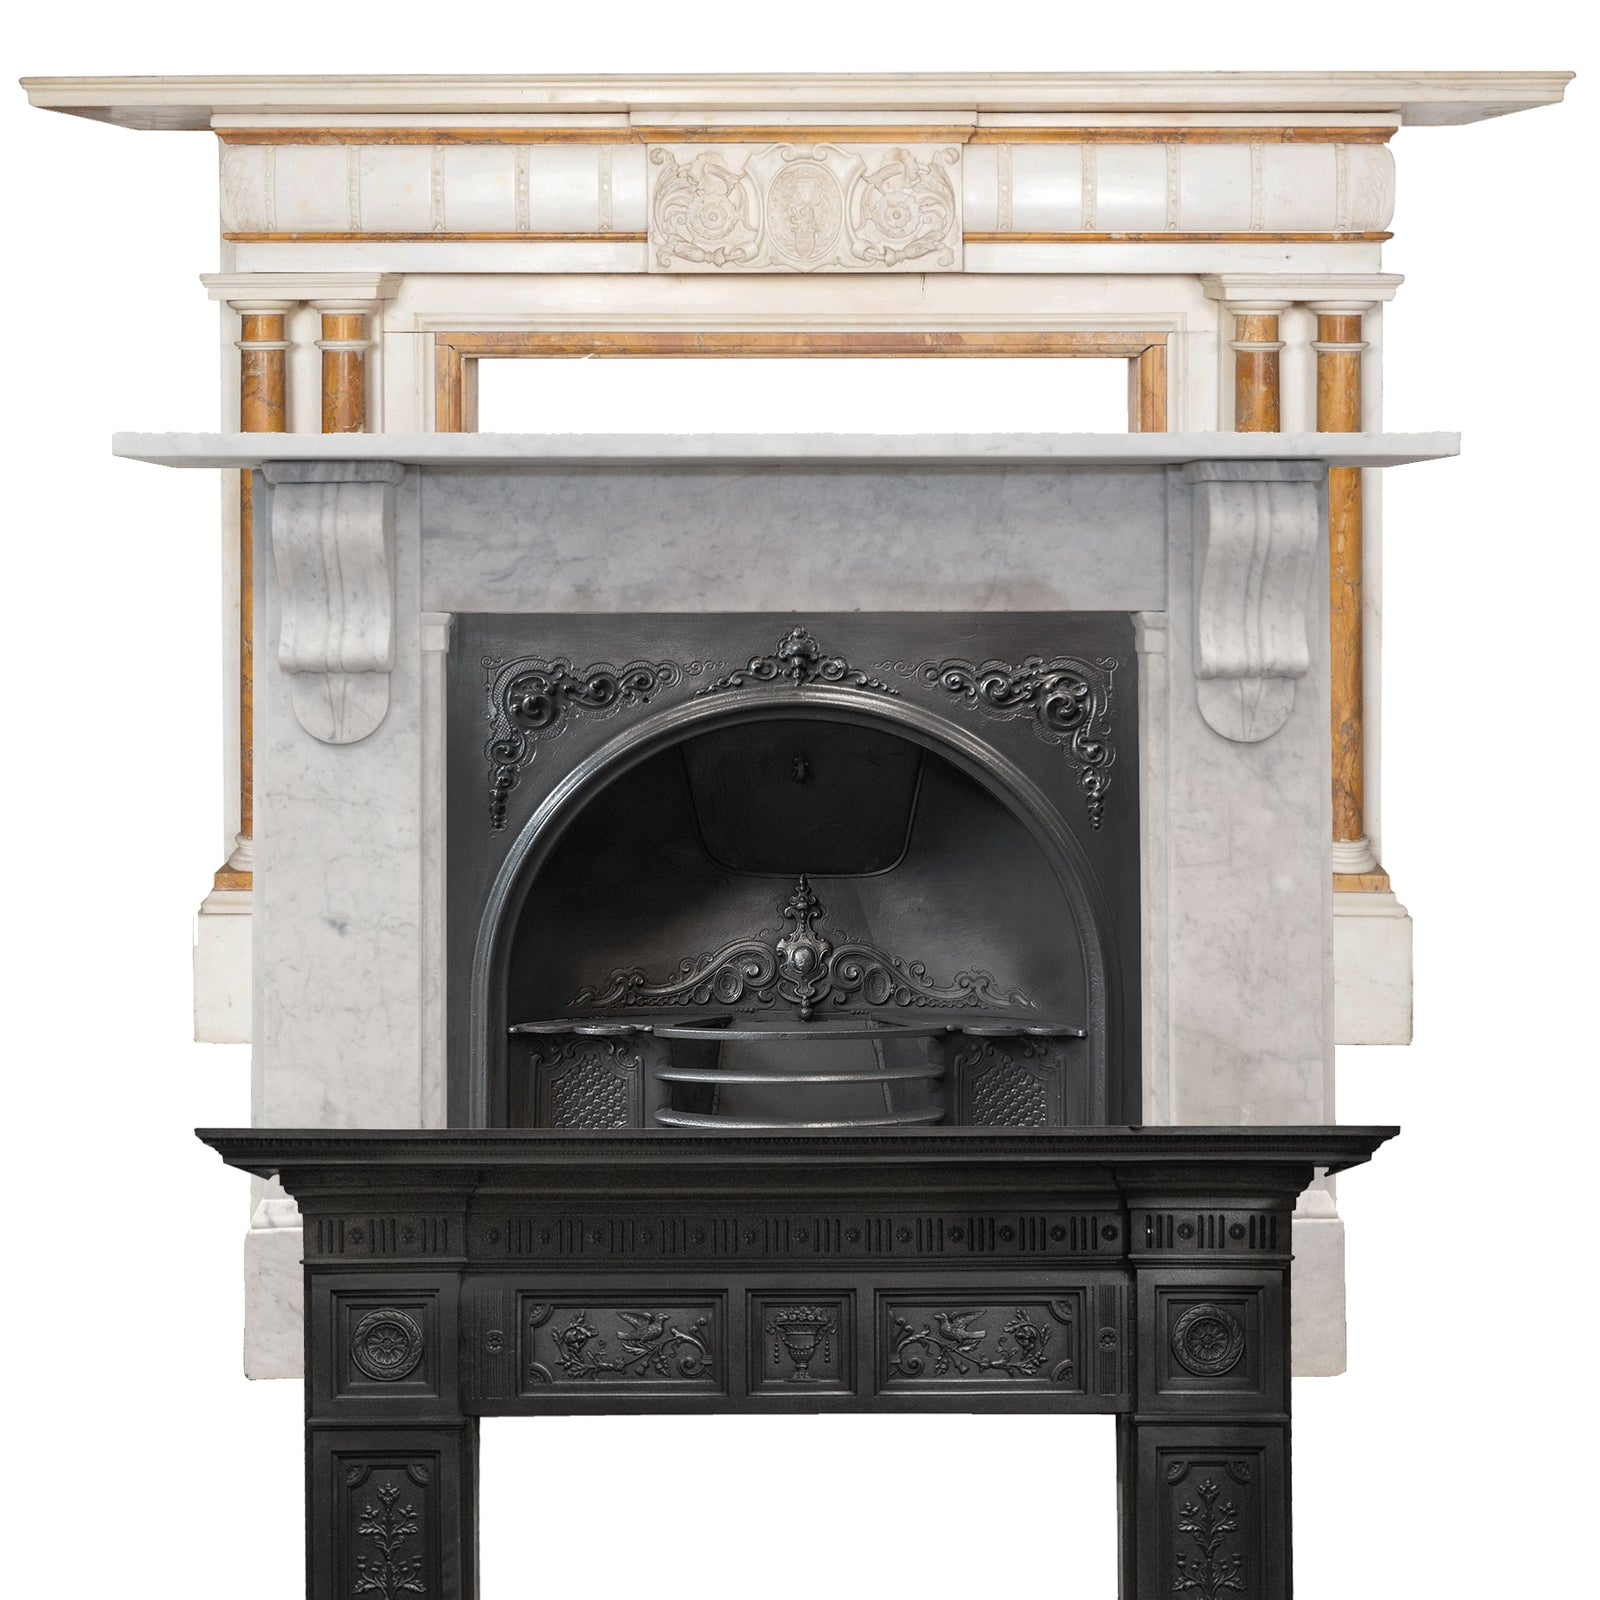 Architectural Salvage & Fireplaces - The Architectural Forum